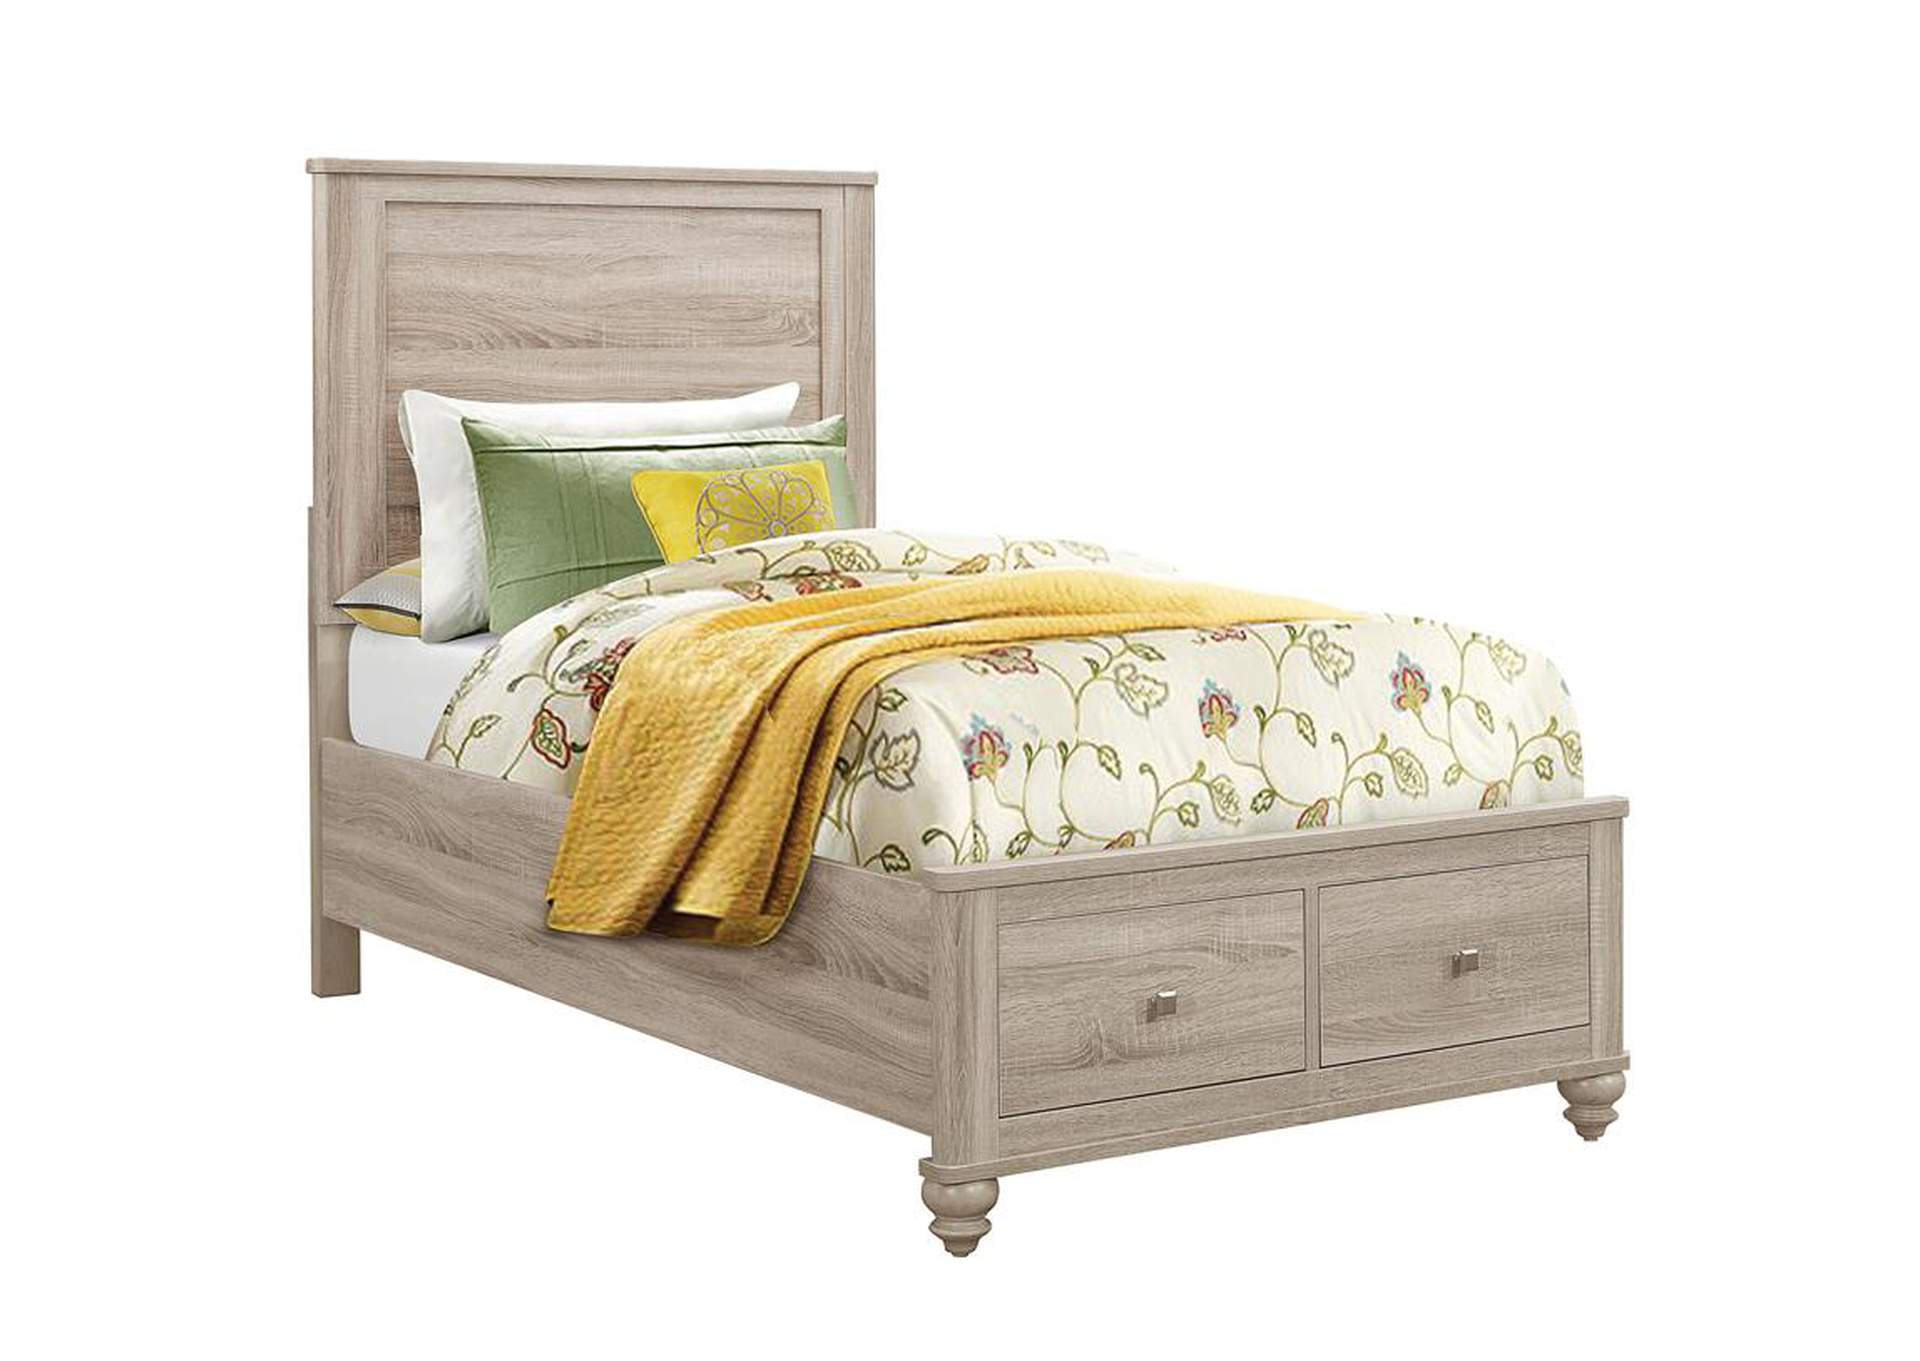 Wenham Natural Oak Twin Storage Bed,Coaster Furniture